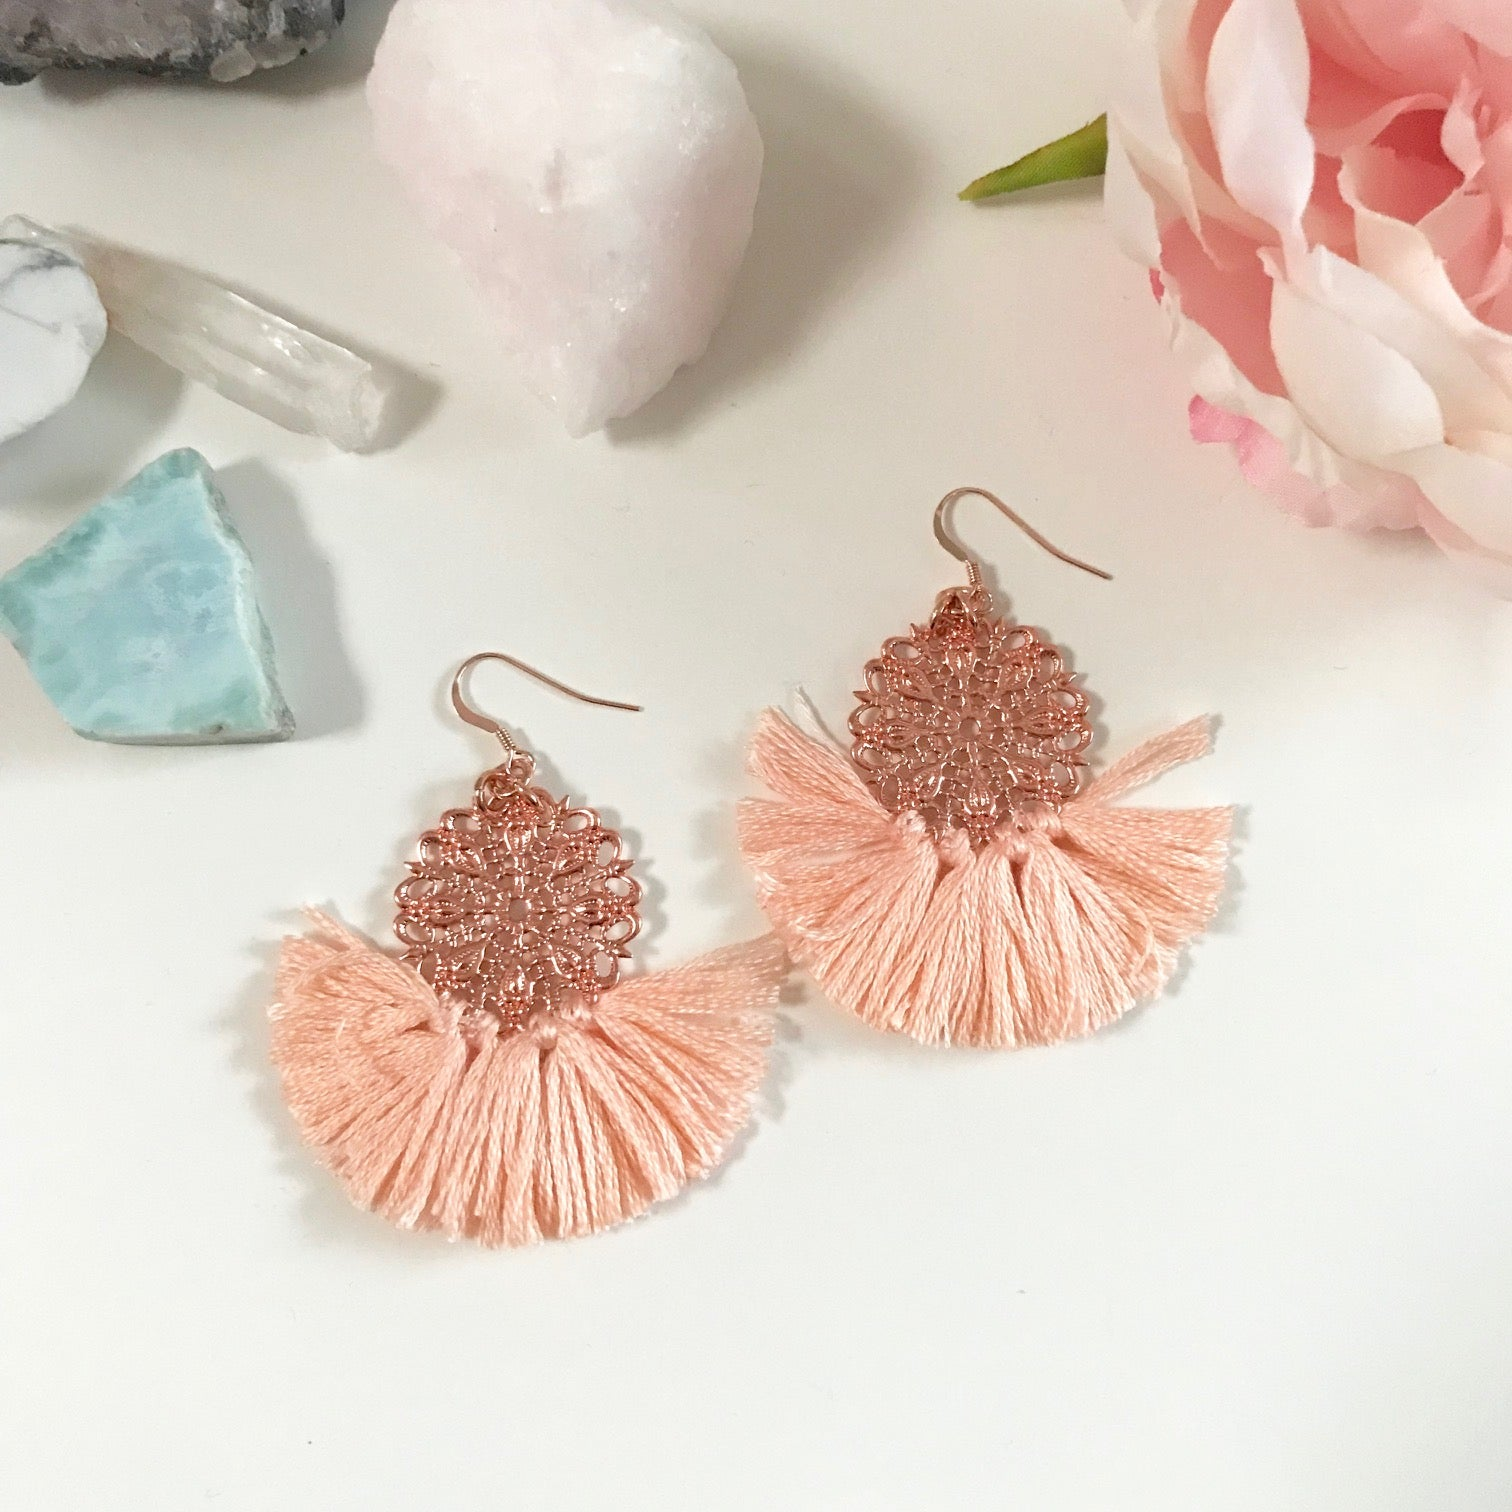 Ballerina Baby Fringe Earrings - Peach Nude